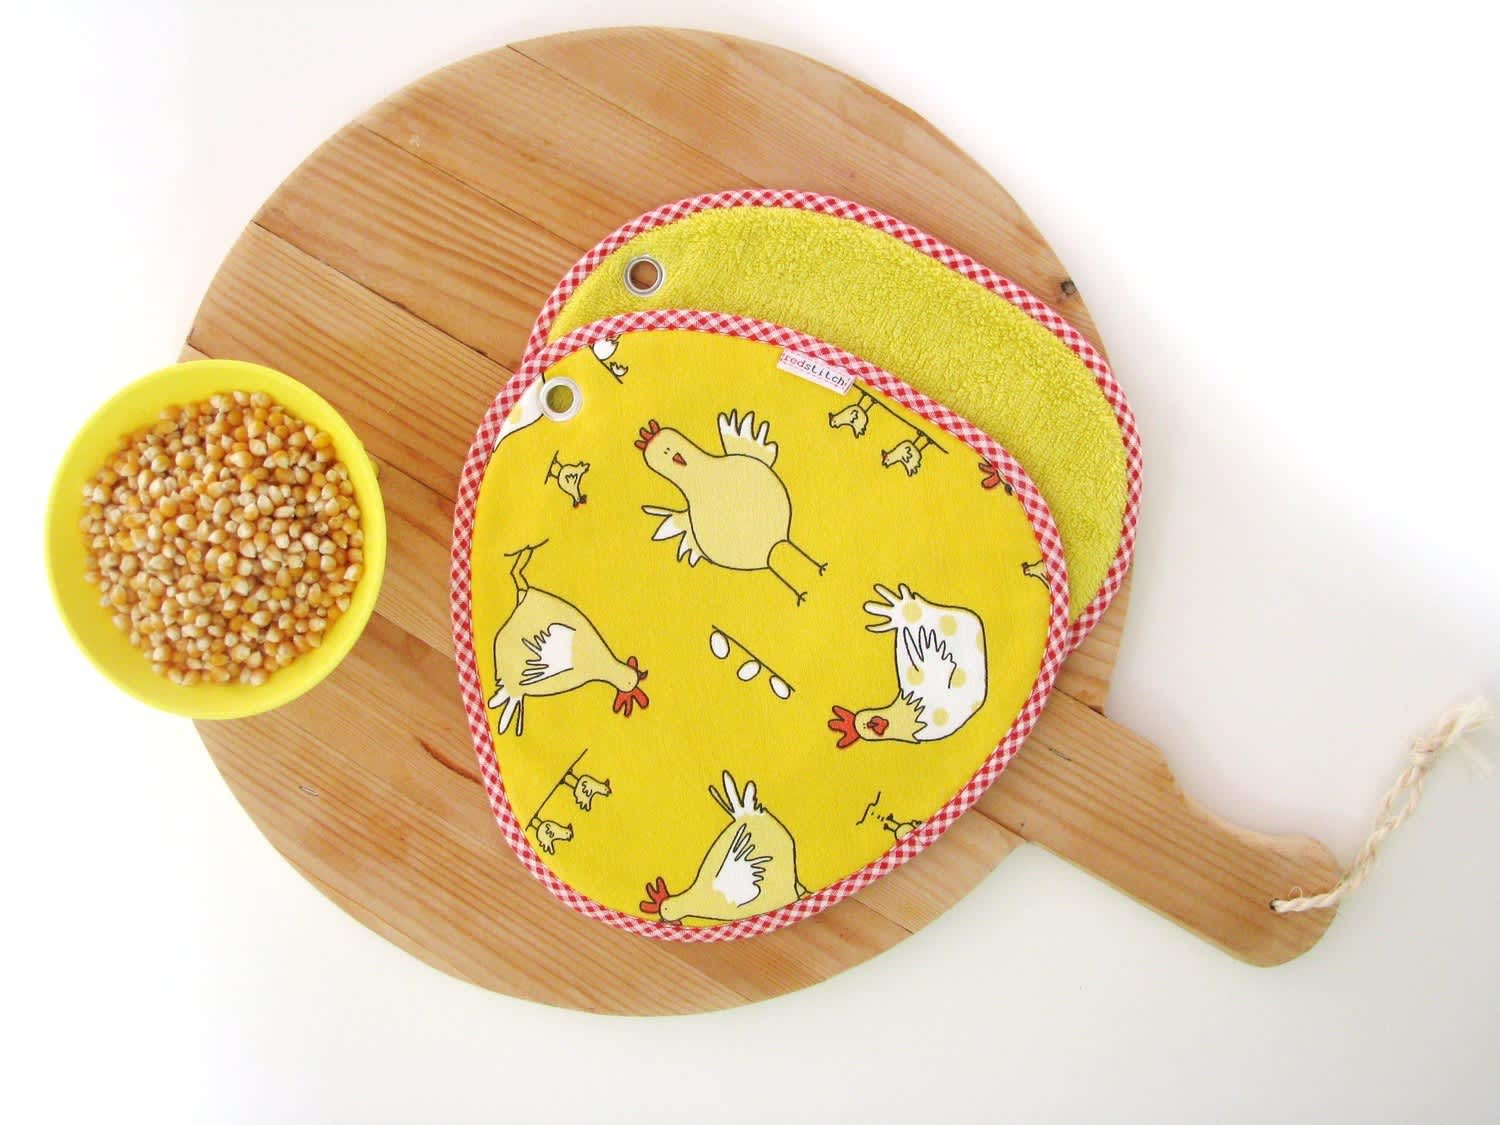 Red Stitch: Super Cute Handmade Potholders from Holland: gallery image 10